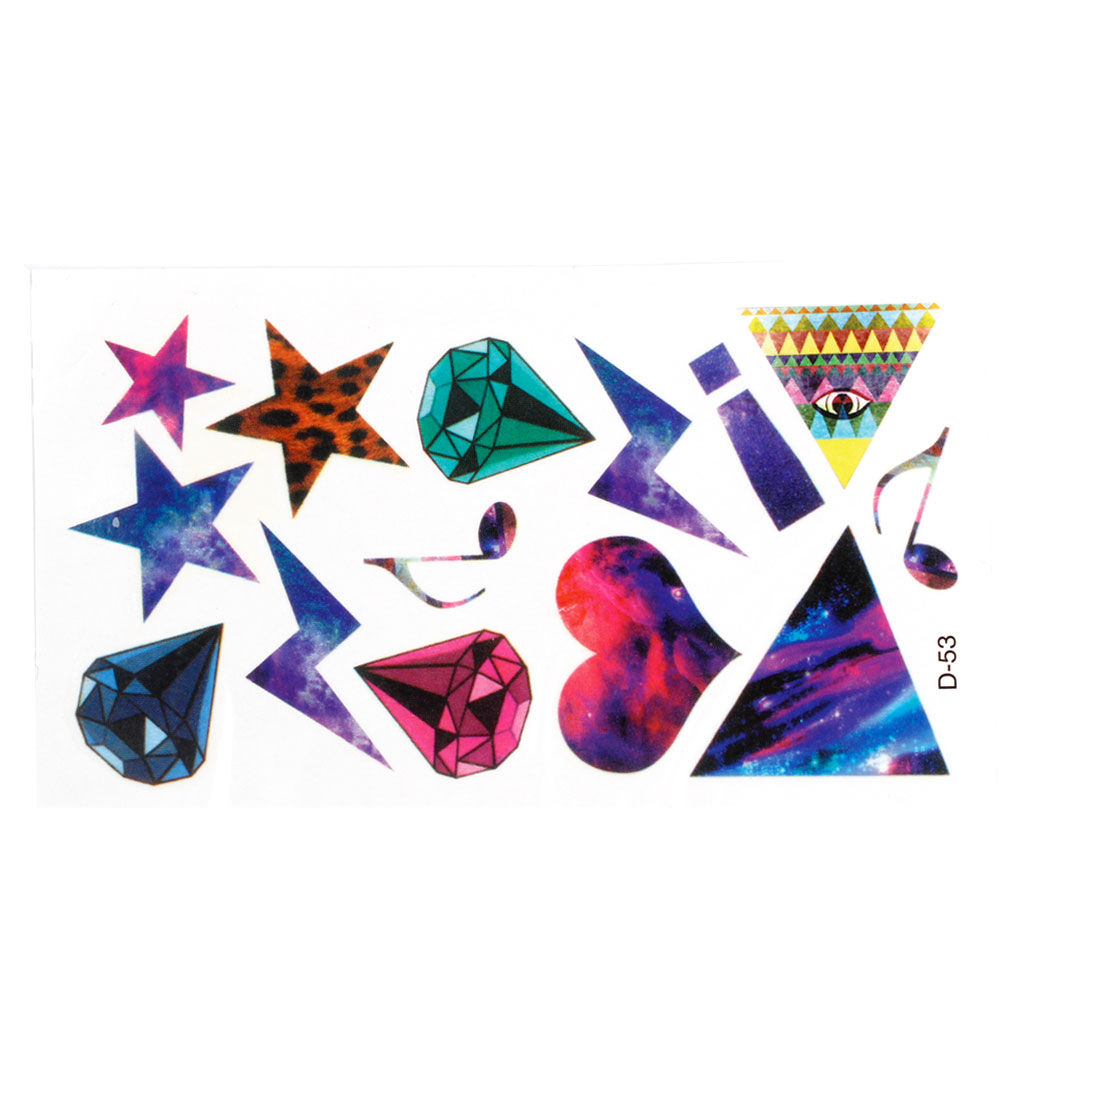 Skin Decorative Stars Diamond Pattern Transfer Tattoos Sticker Multicolor